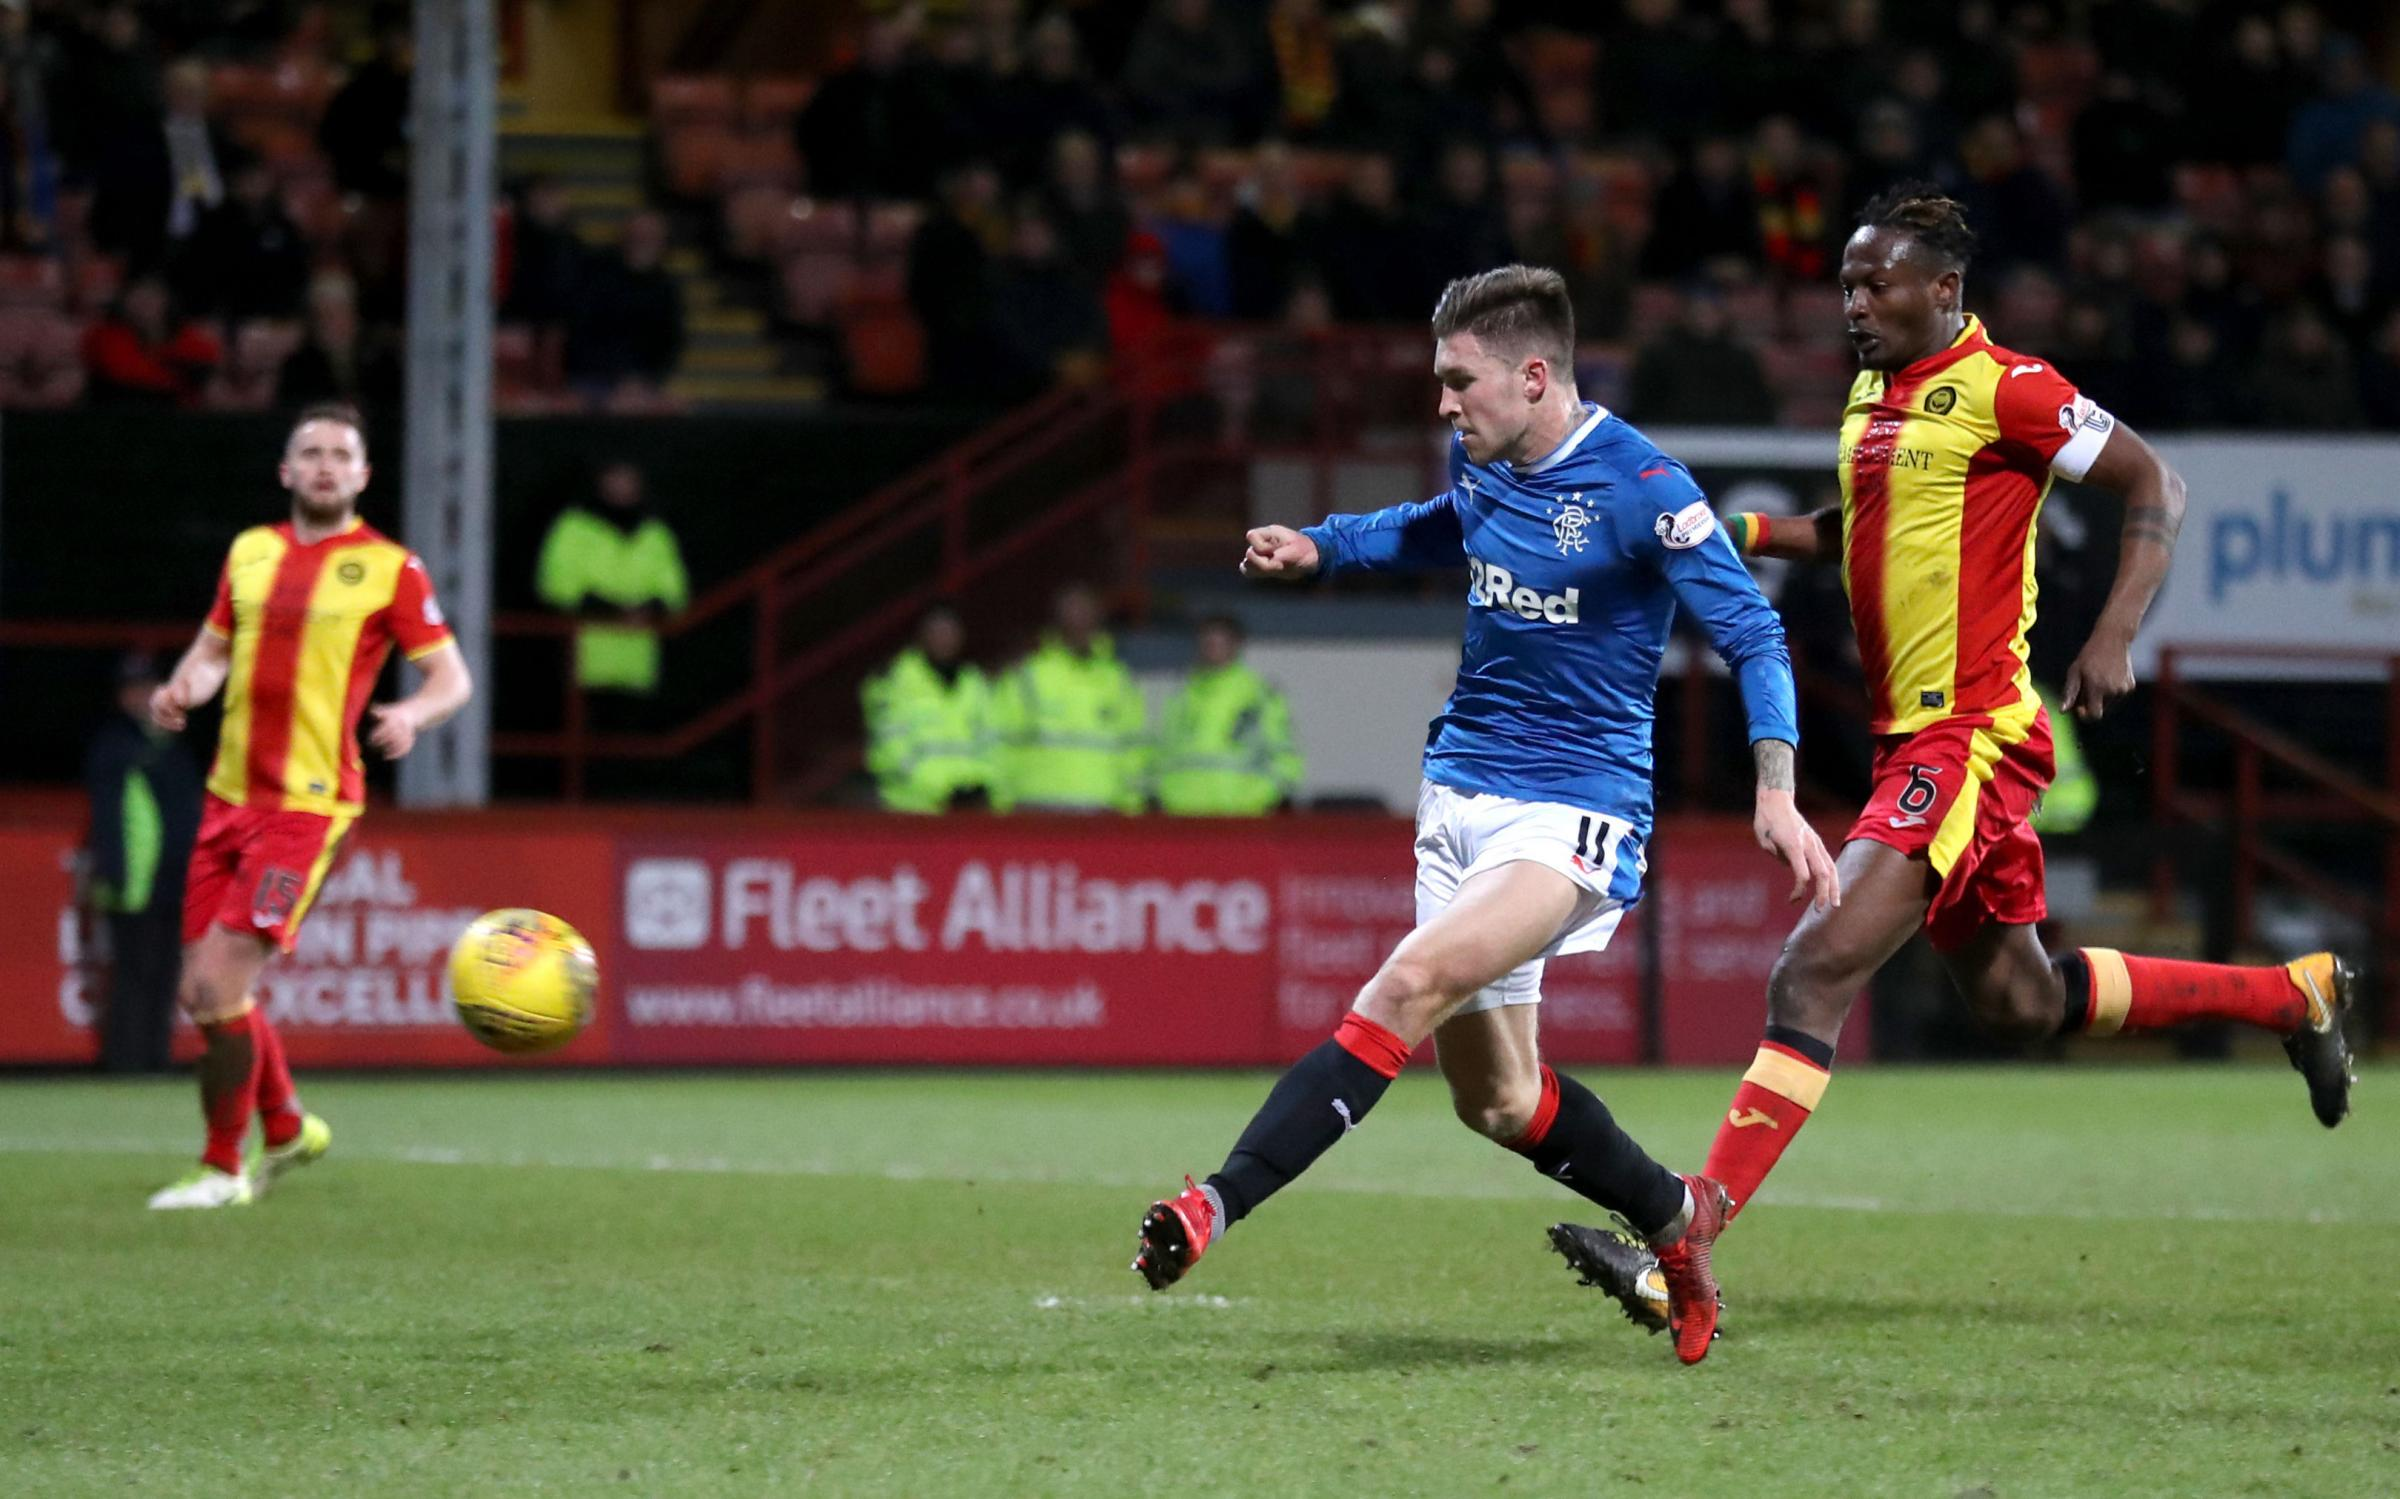 Josh Windass has his critics but he scored a good goal against Partick Thistle at Firhill